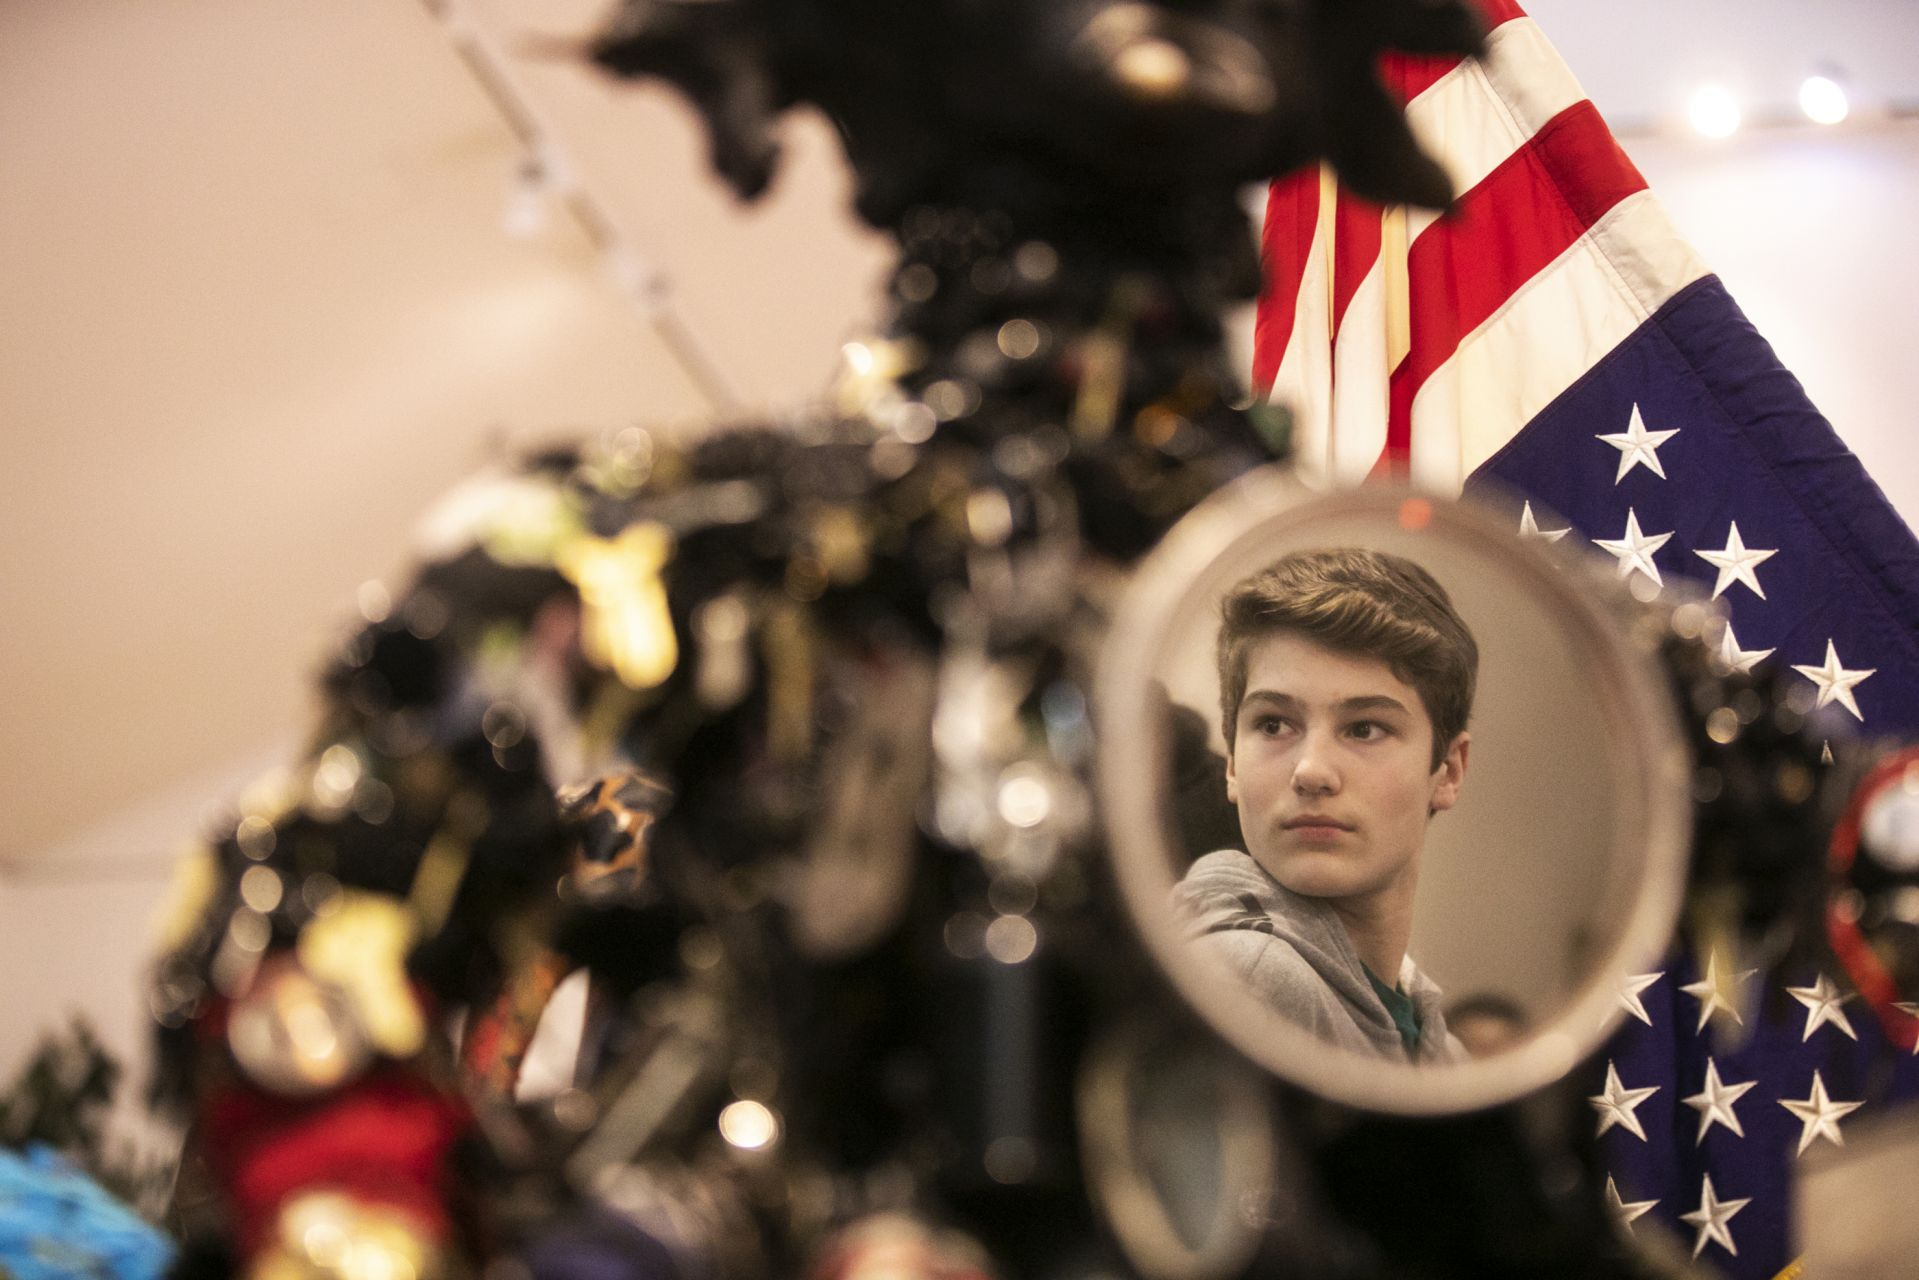 Lewiston Middle School student Michael Caron, 13, is seen in a reflection from a mirror while visiting the Bates Museum of Art on February 5, 2020.